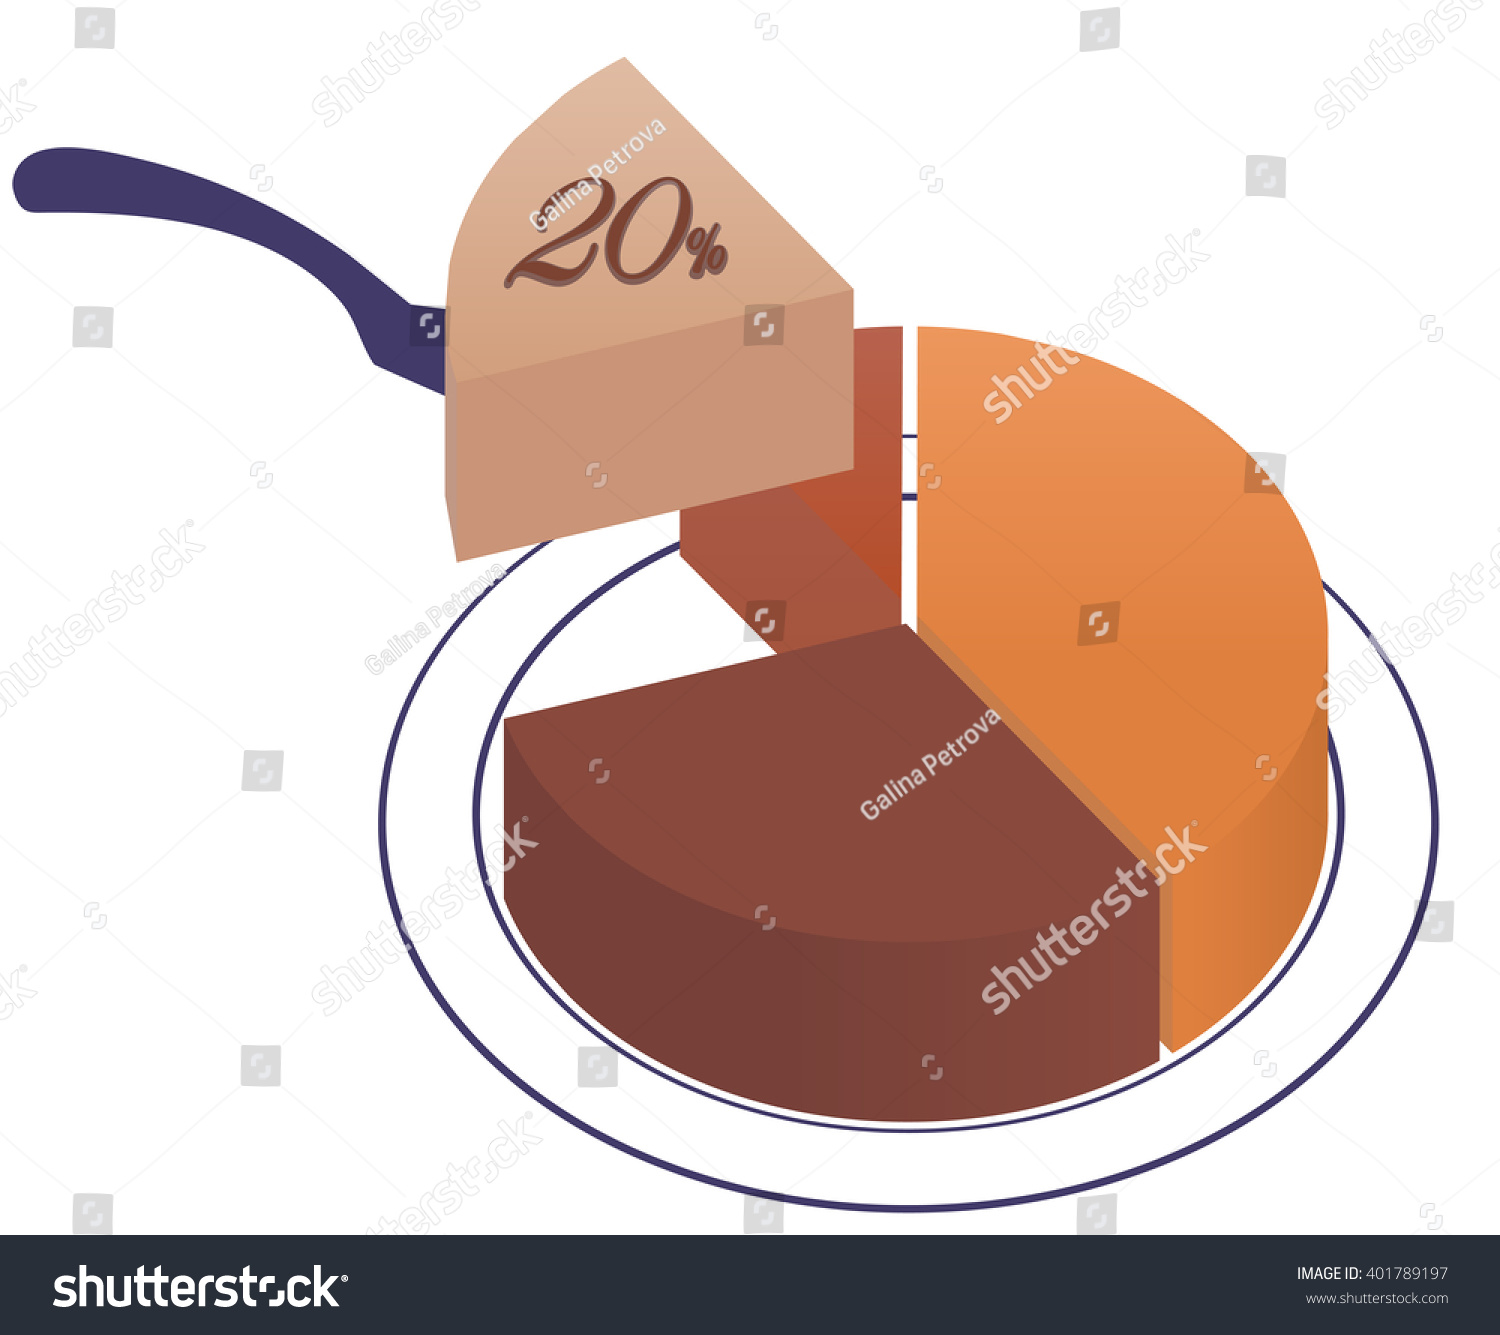 Infographics exploded pie chart one sector stock vector 401789197 infographics exploded pie chart with one sector 20 separated from the rest ccuart Choice Image